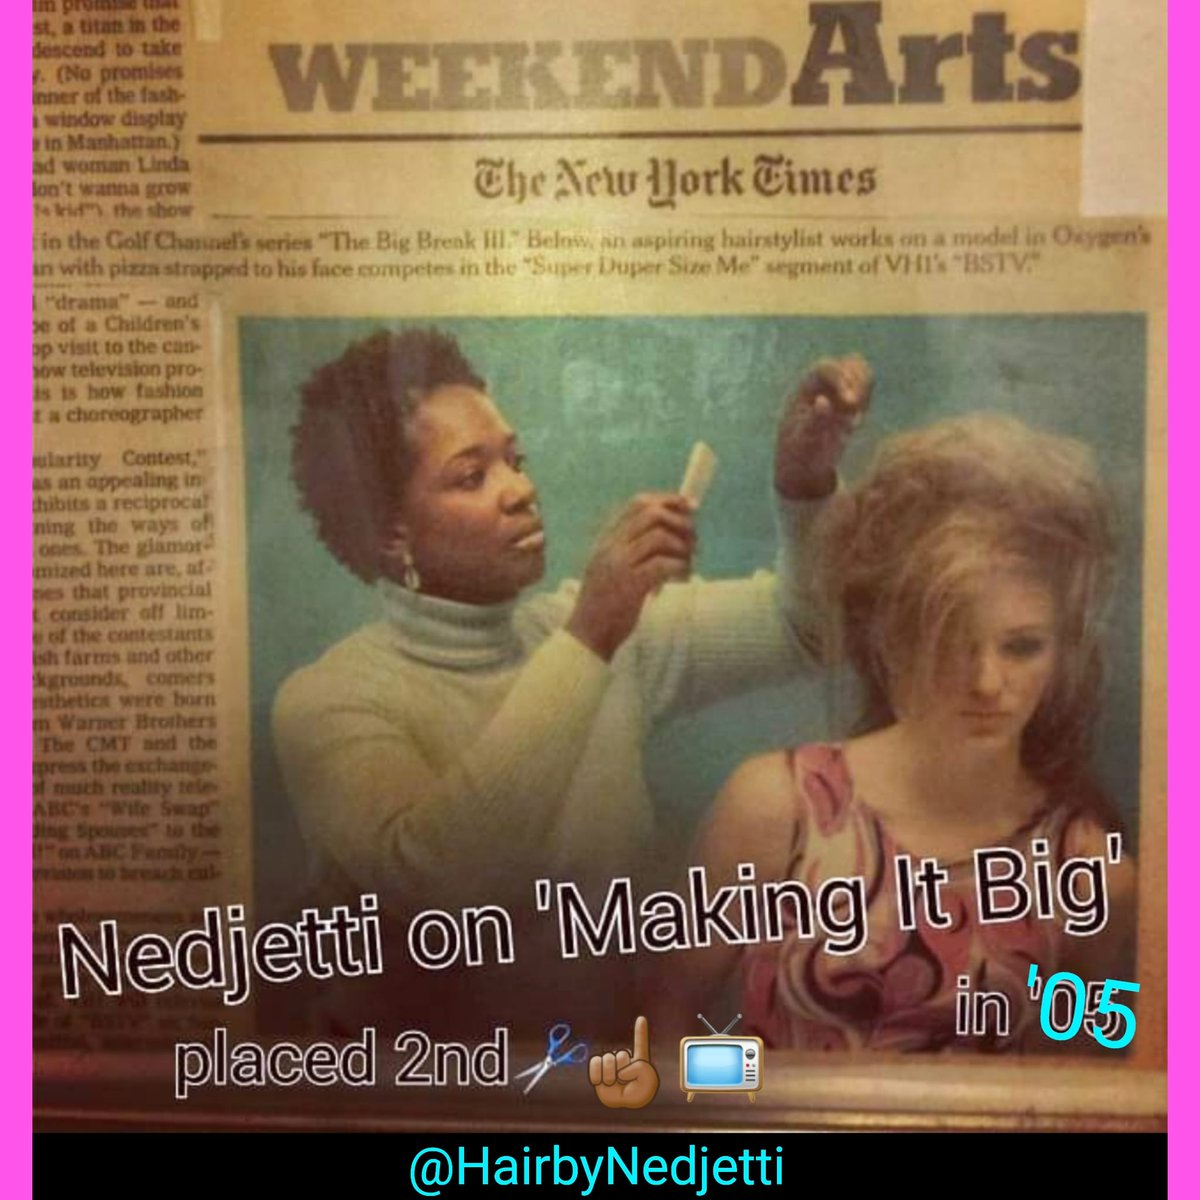 #tbt #Nedjetti '05 age 38 on #TheNewYorkTimes cover as a #HairArtist contestant on #MakingItBig #RealityTV show #OxygenNetwork🎥   📺MIB was the 1st competition #RealityShow about up & coming #HairDesigners✂️  #NedjettiHarvey says #ThinkIt  #SayIt #DoIt & #GOD WILL do the rest🙌🏾